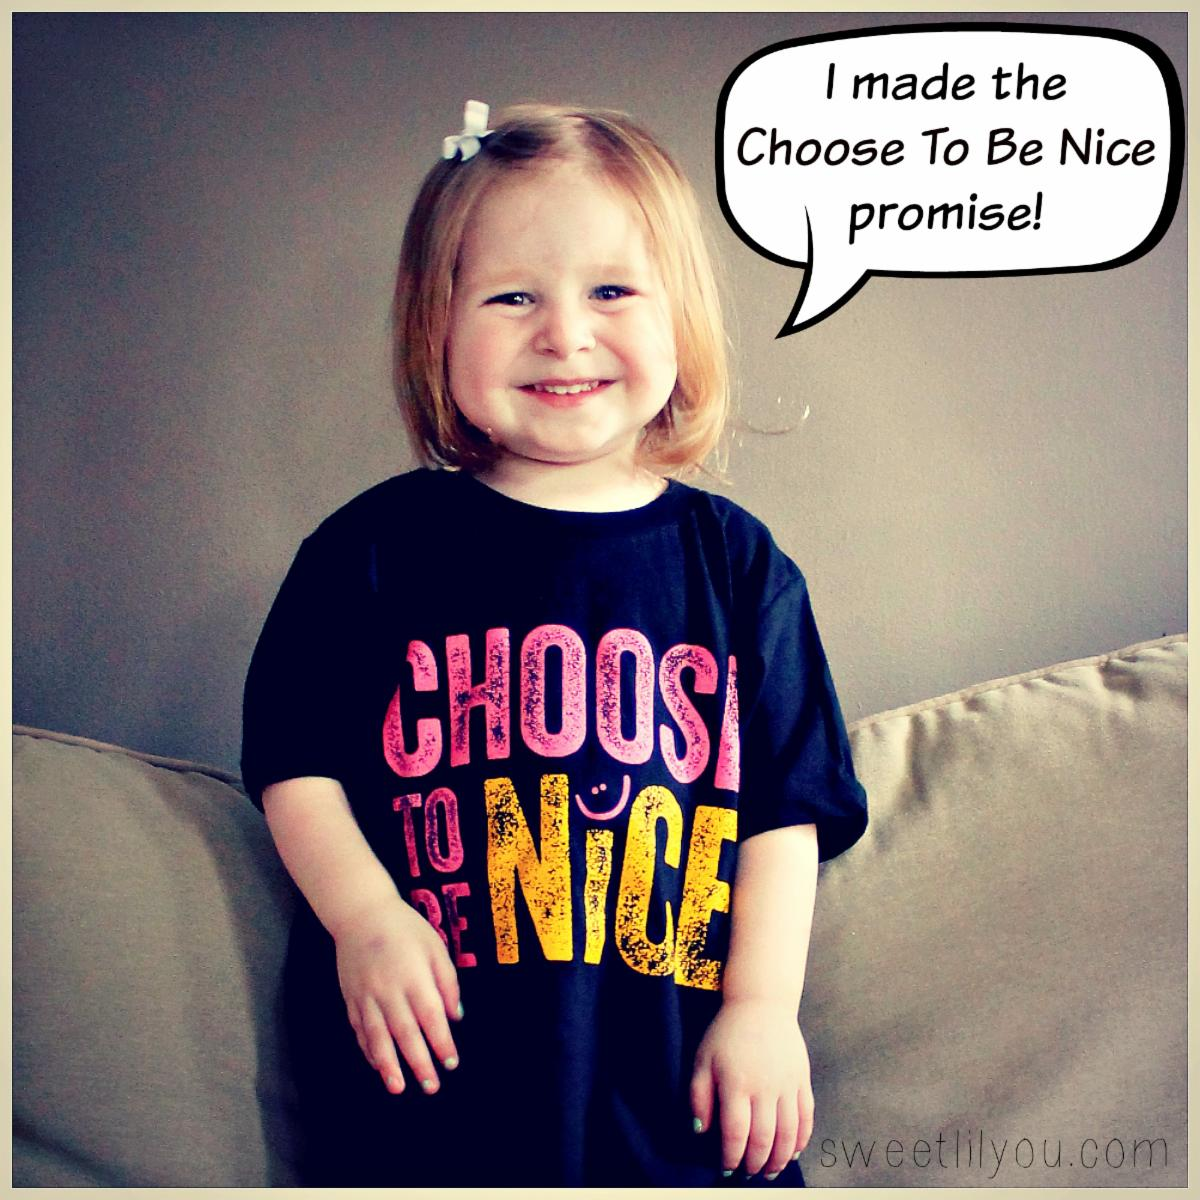 Have you made YOUR PROMISE yet? We promise to always CHOOSE TO BE NICE! Make your promise today with your family & peers:  #ctbn #kindness #swag #hoodies #tees #hats #makethepromise #friendship #familyfun #schoolfun